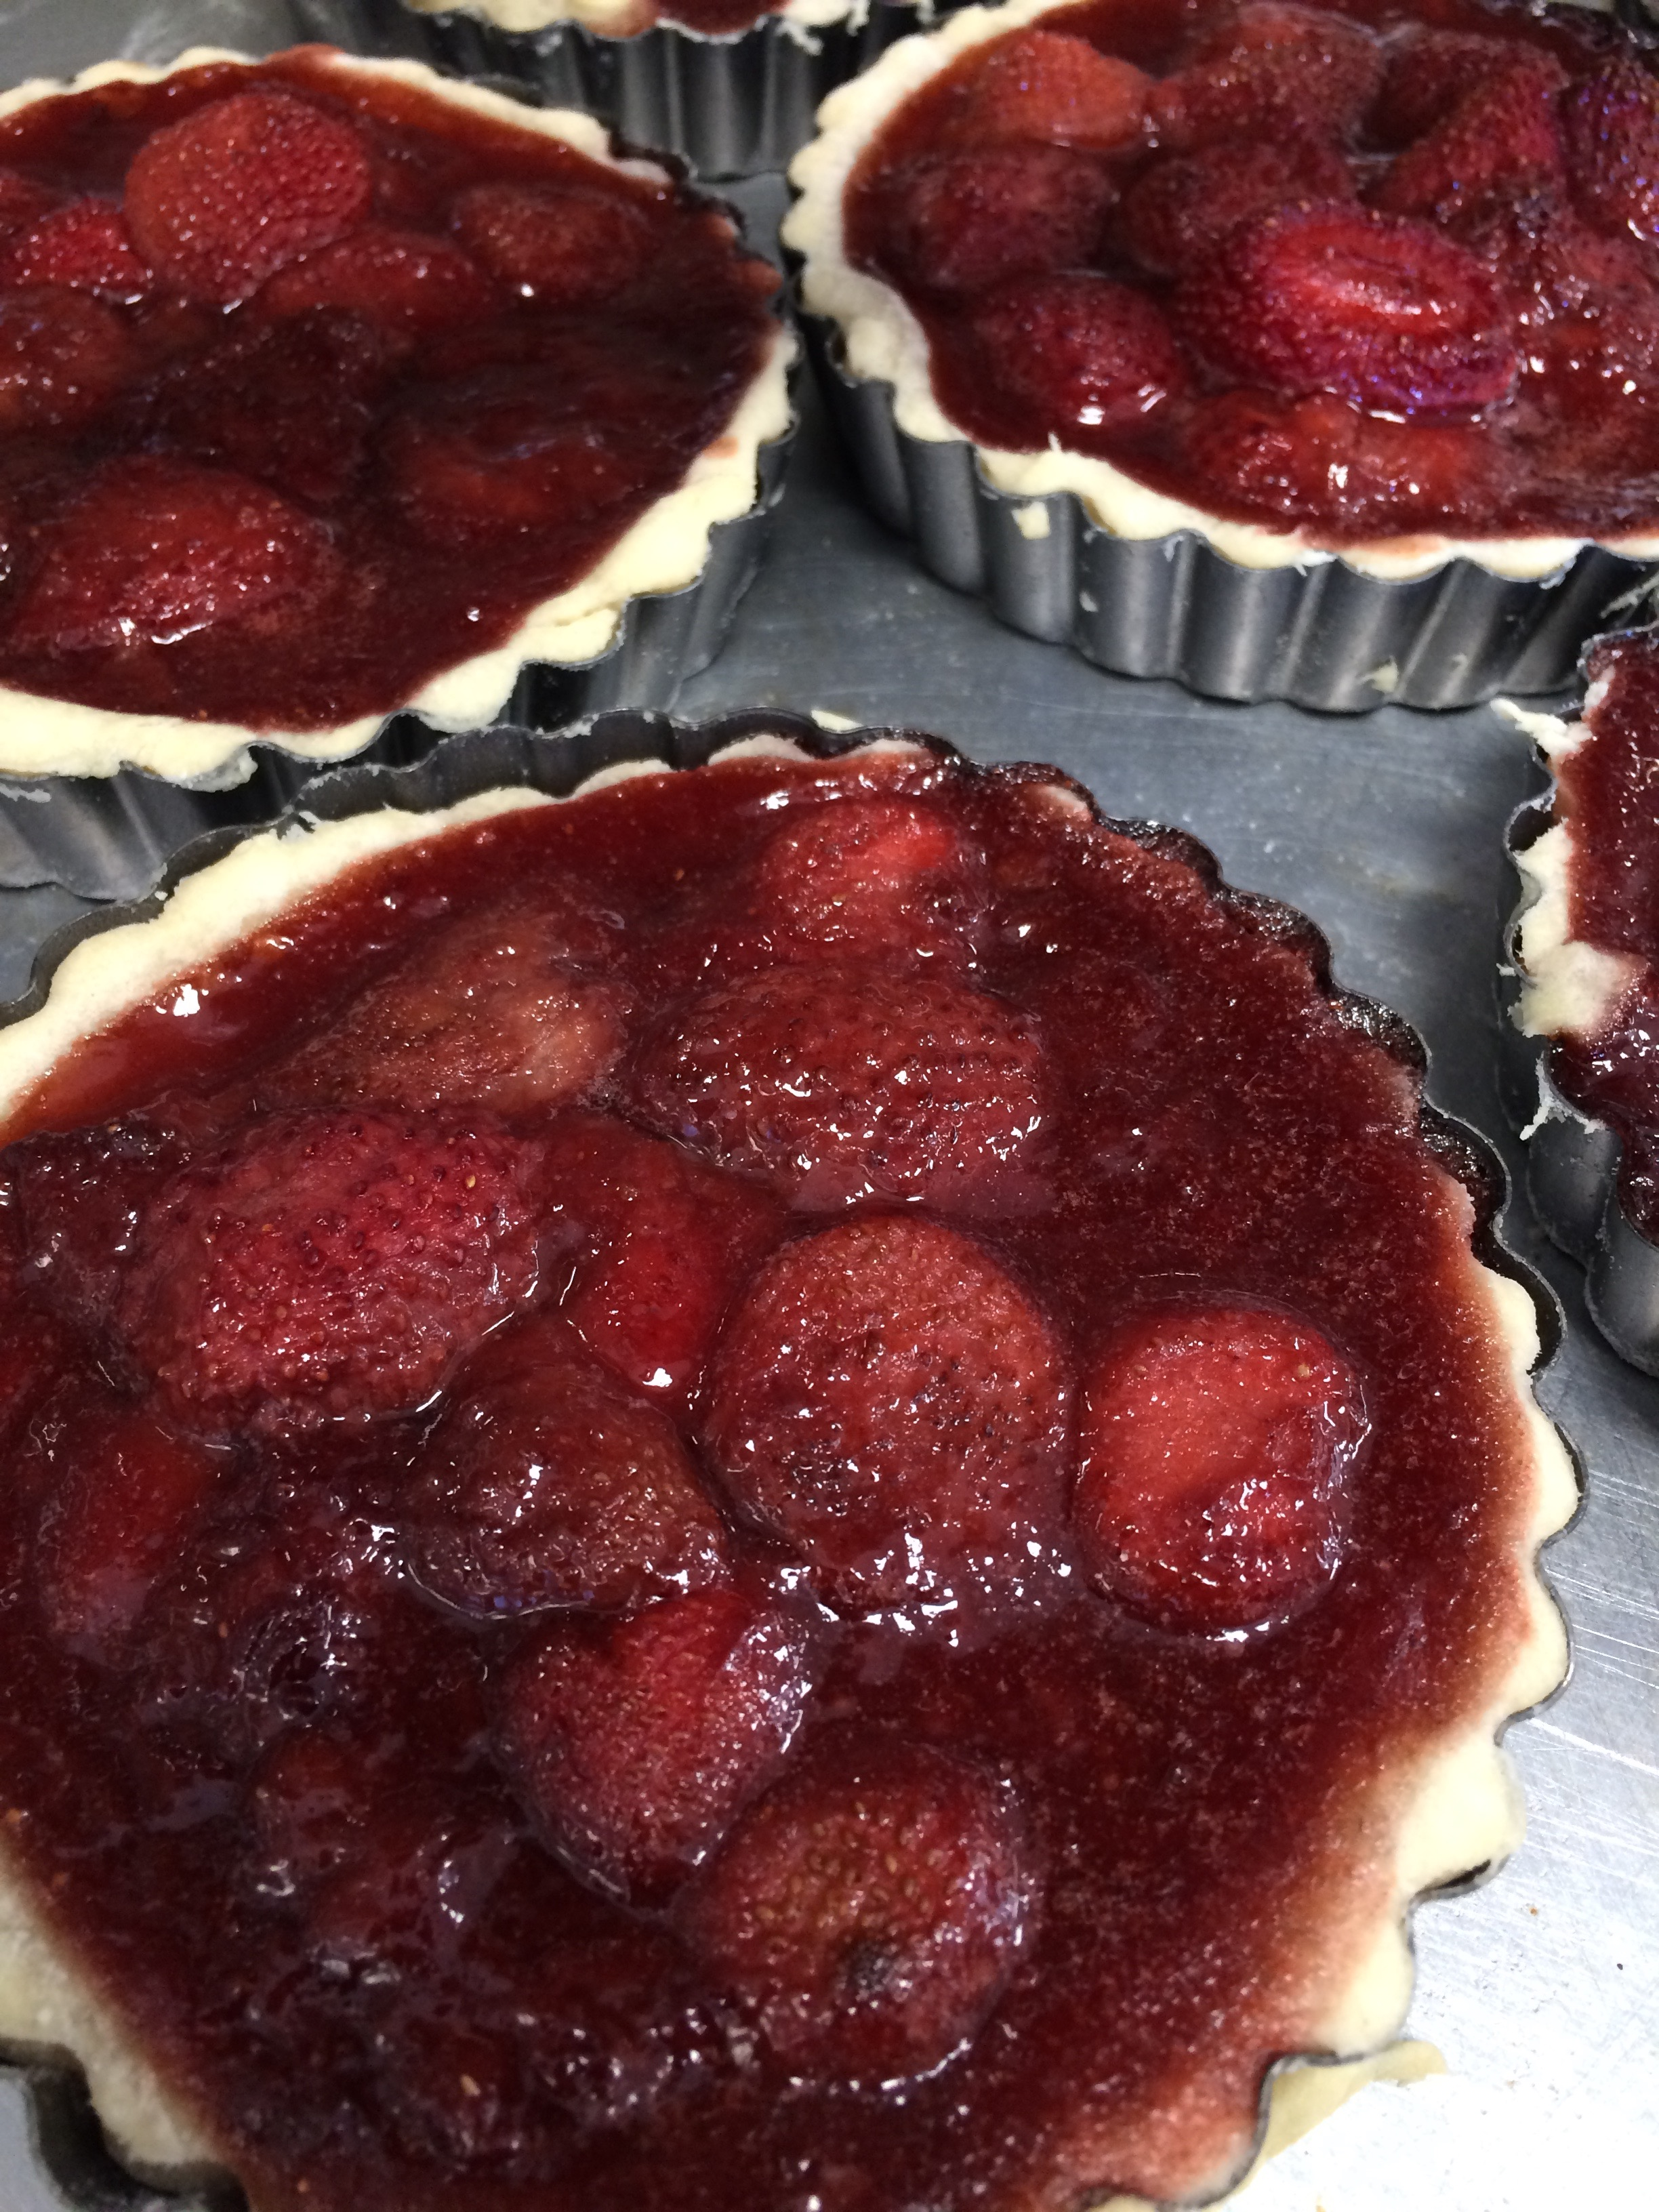 Organic strawberry tart